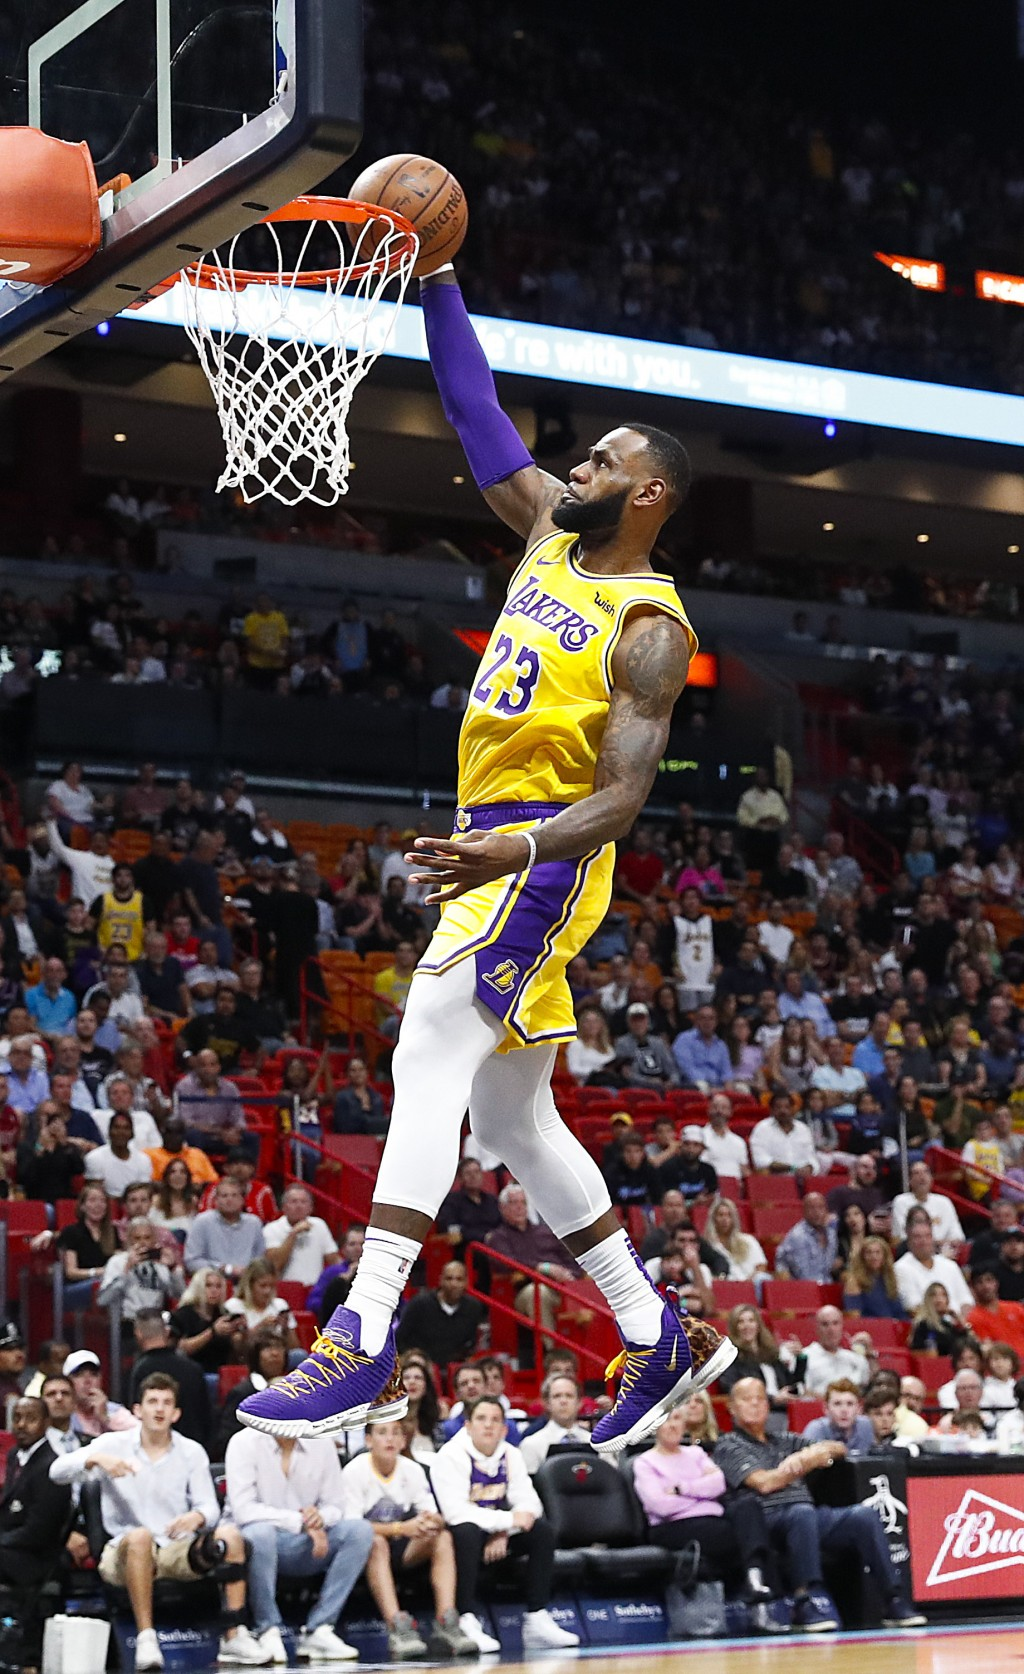 d5916d7f20b8 Los Angeles Lakers forward LeBron James scores during the first quarter of  an NBA basketball game